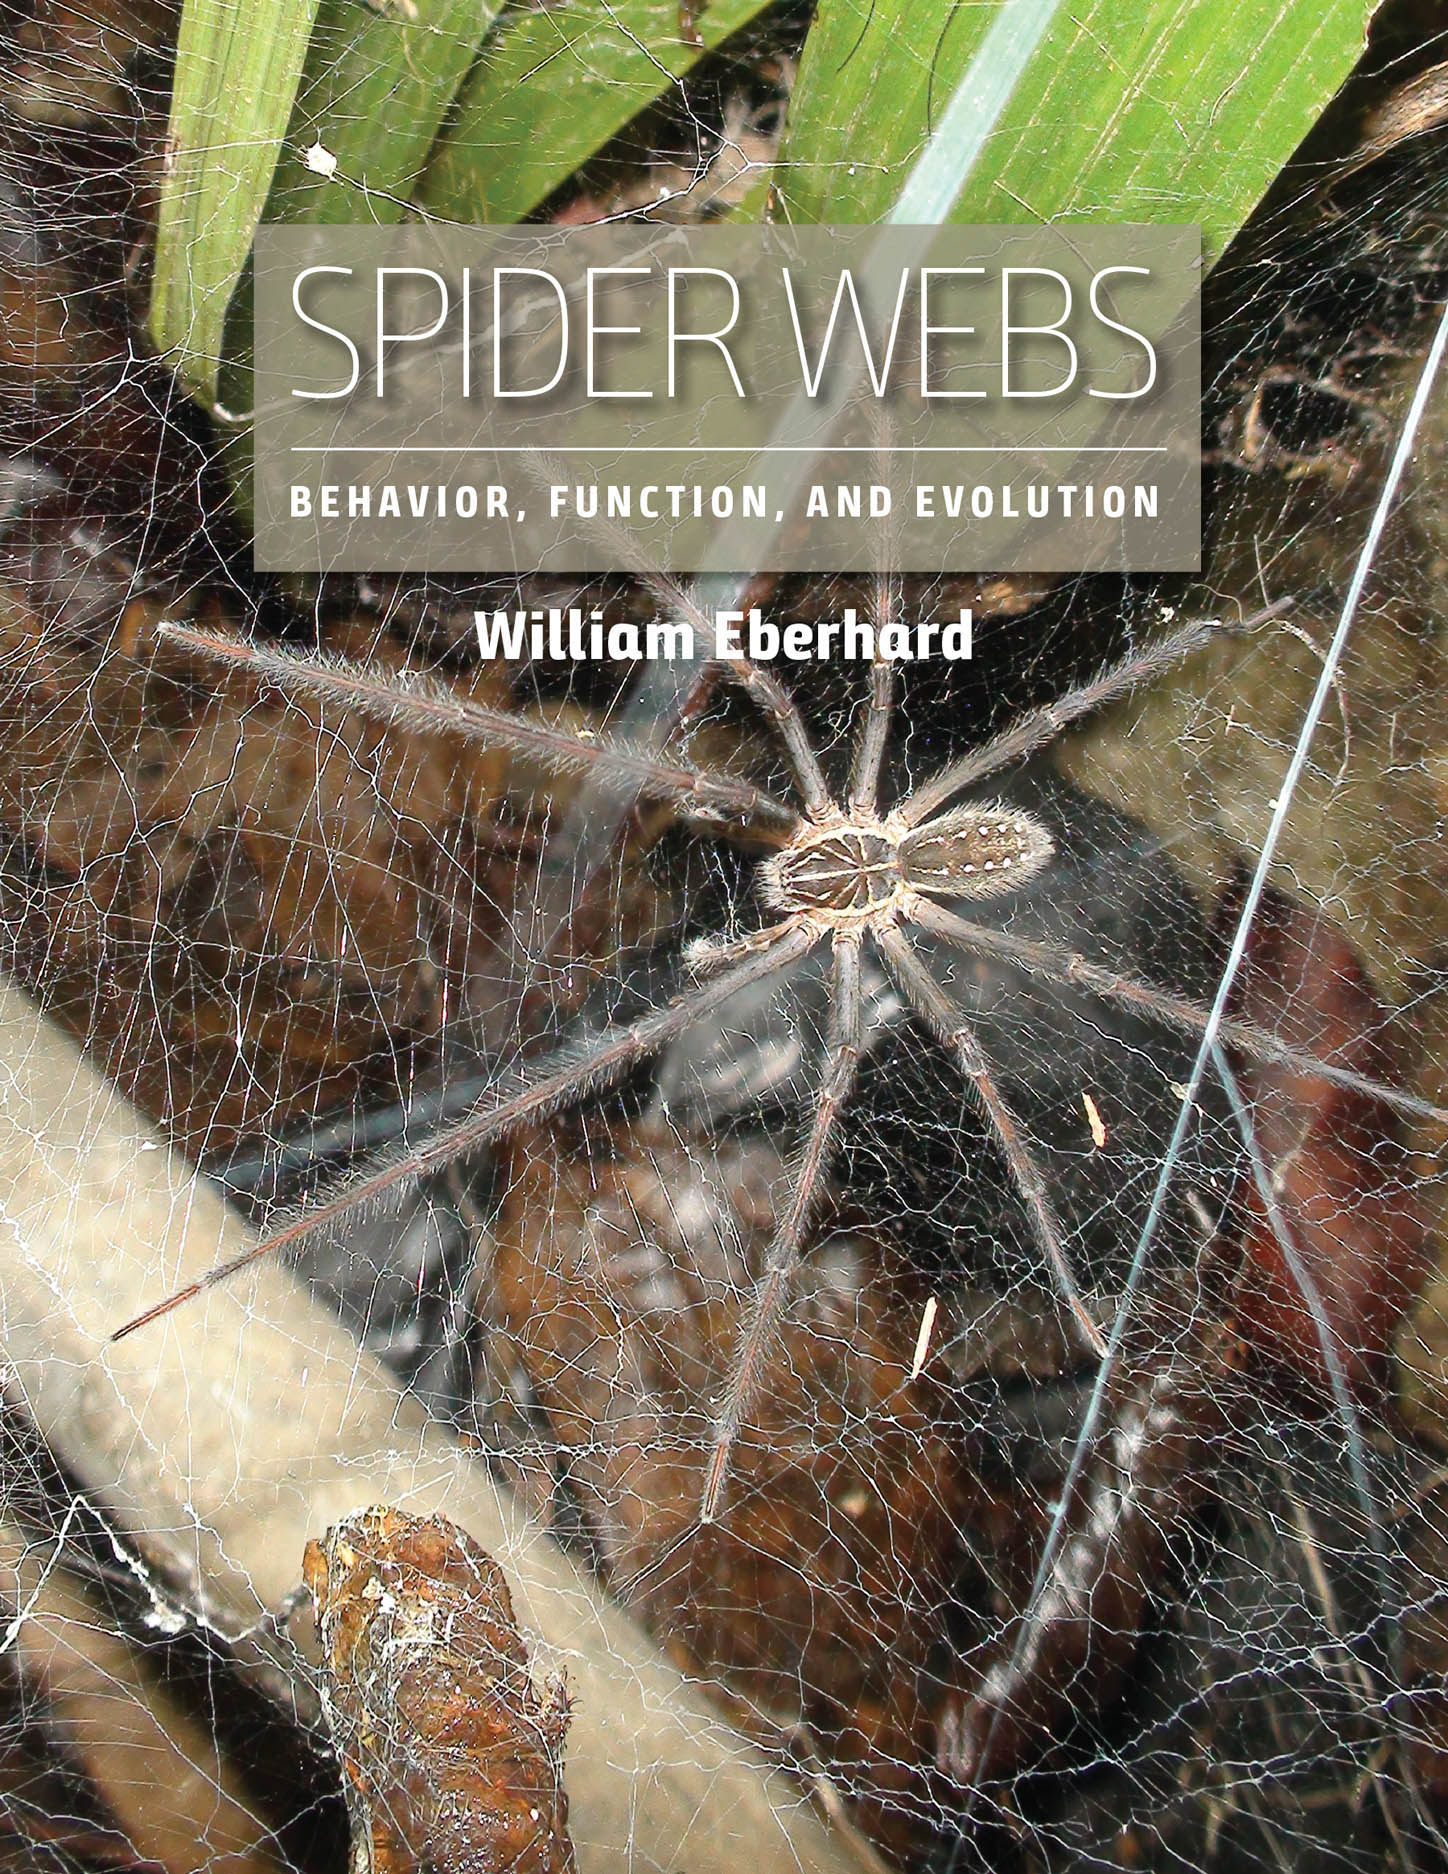 Spider Webs: Behavior, Function, and Evolution